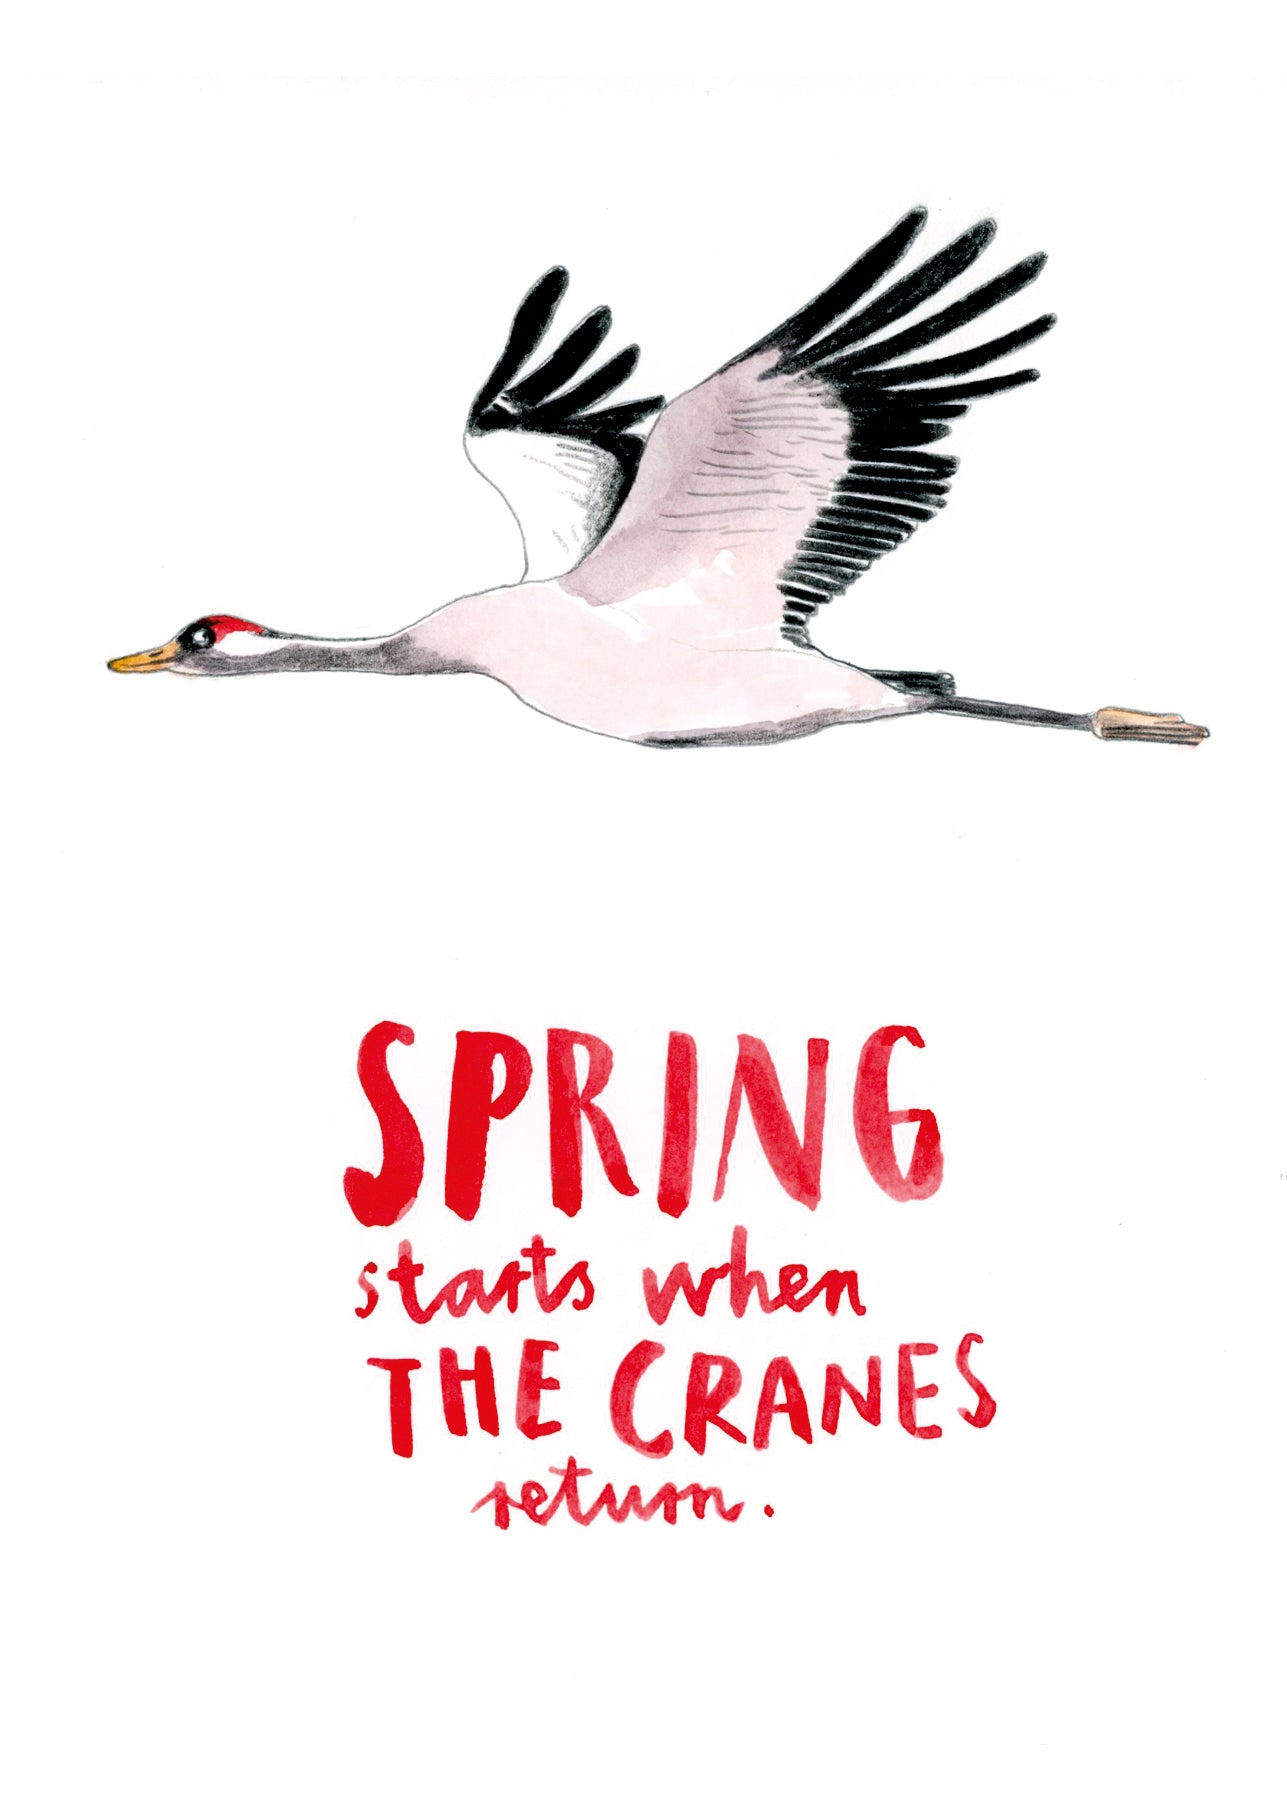 Spring starts when the cranes return